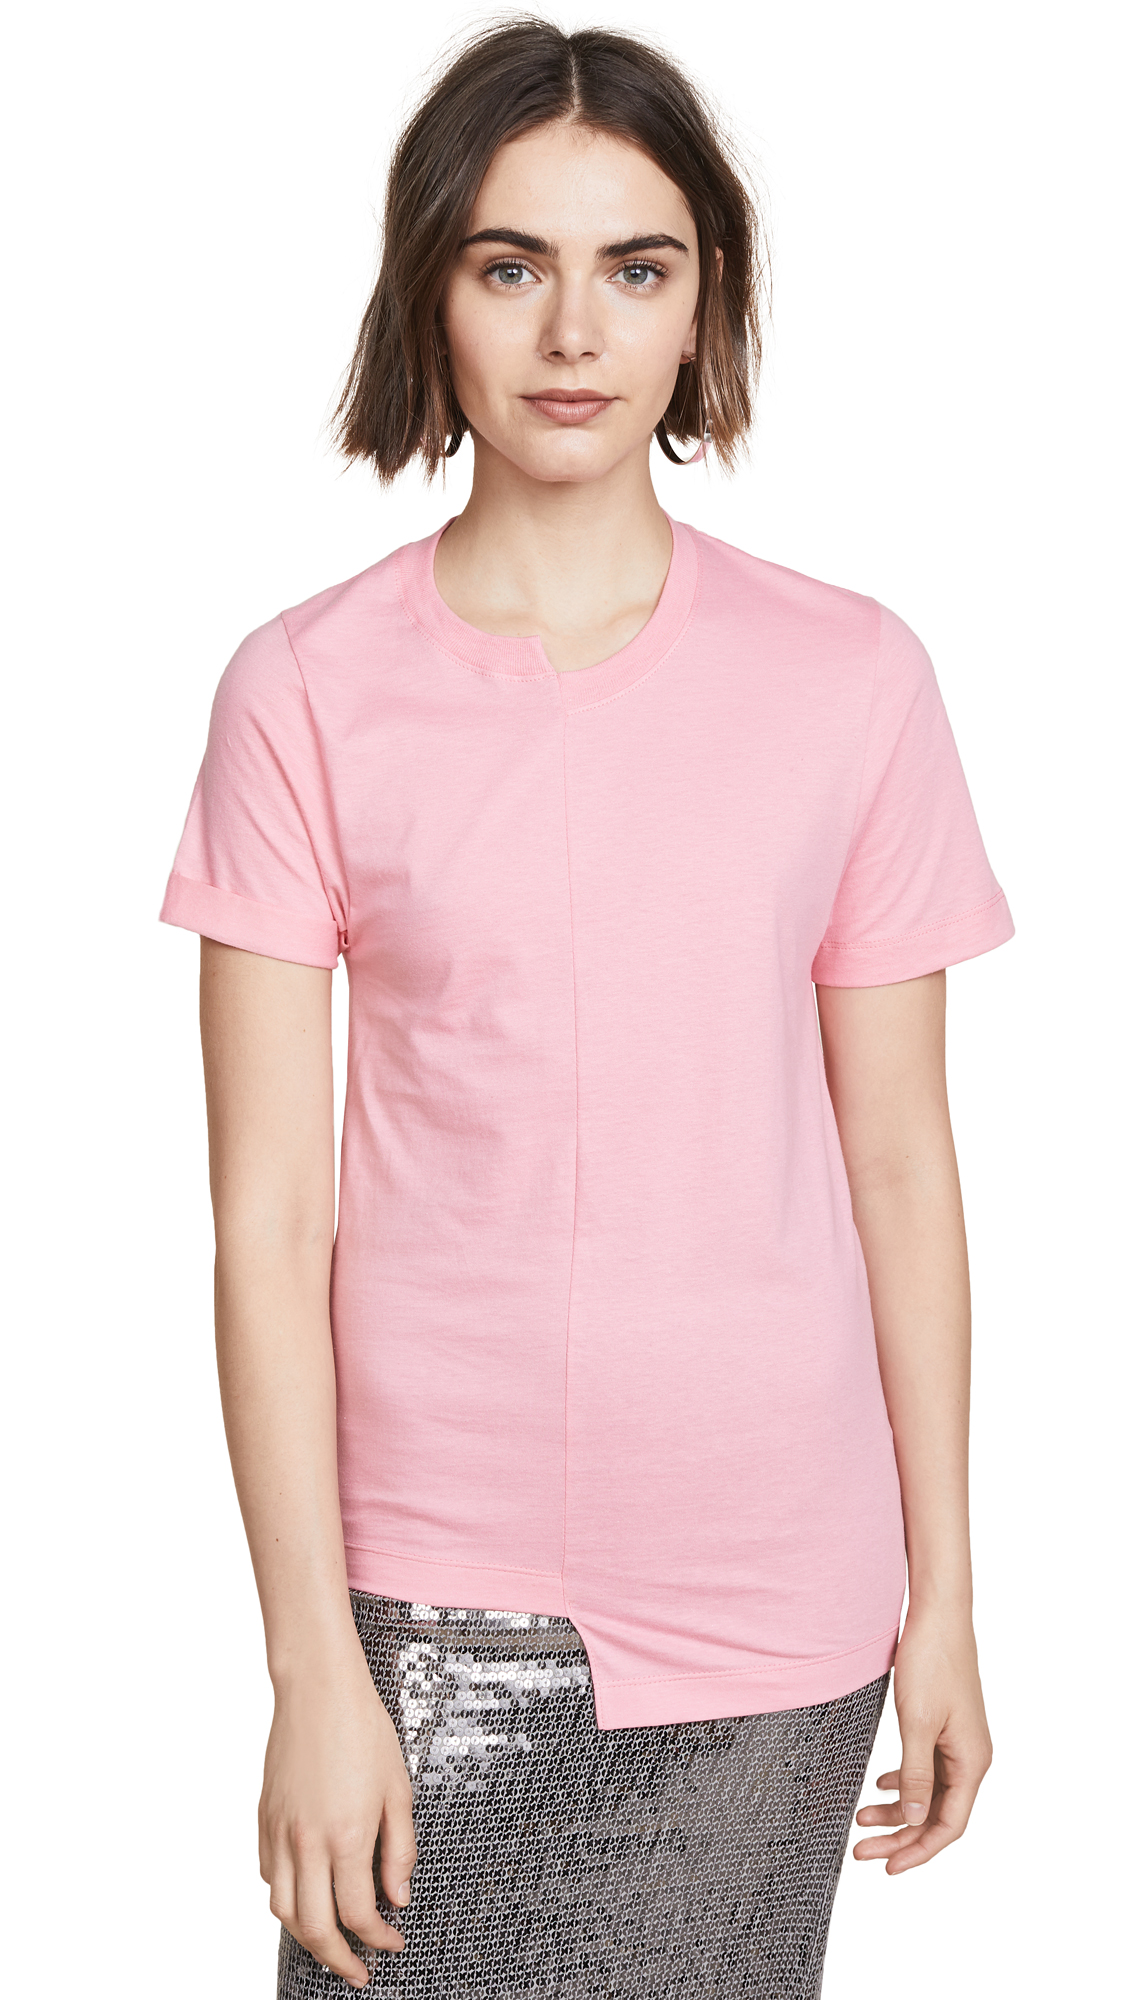 Cedric Charlier x Fruit of the Loom Asymmetrical Tee - Pink